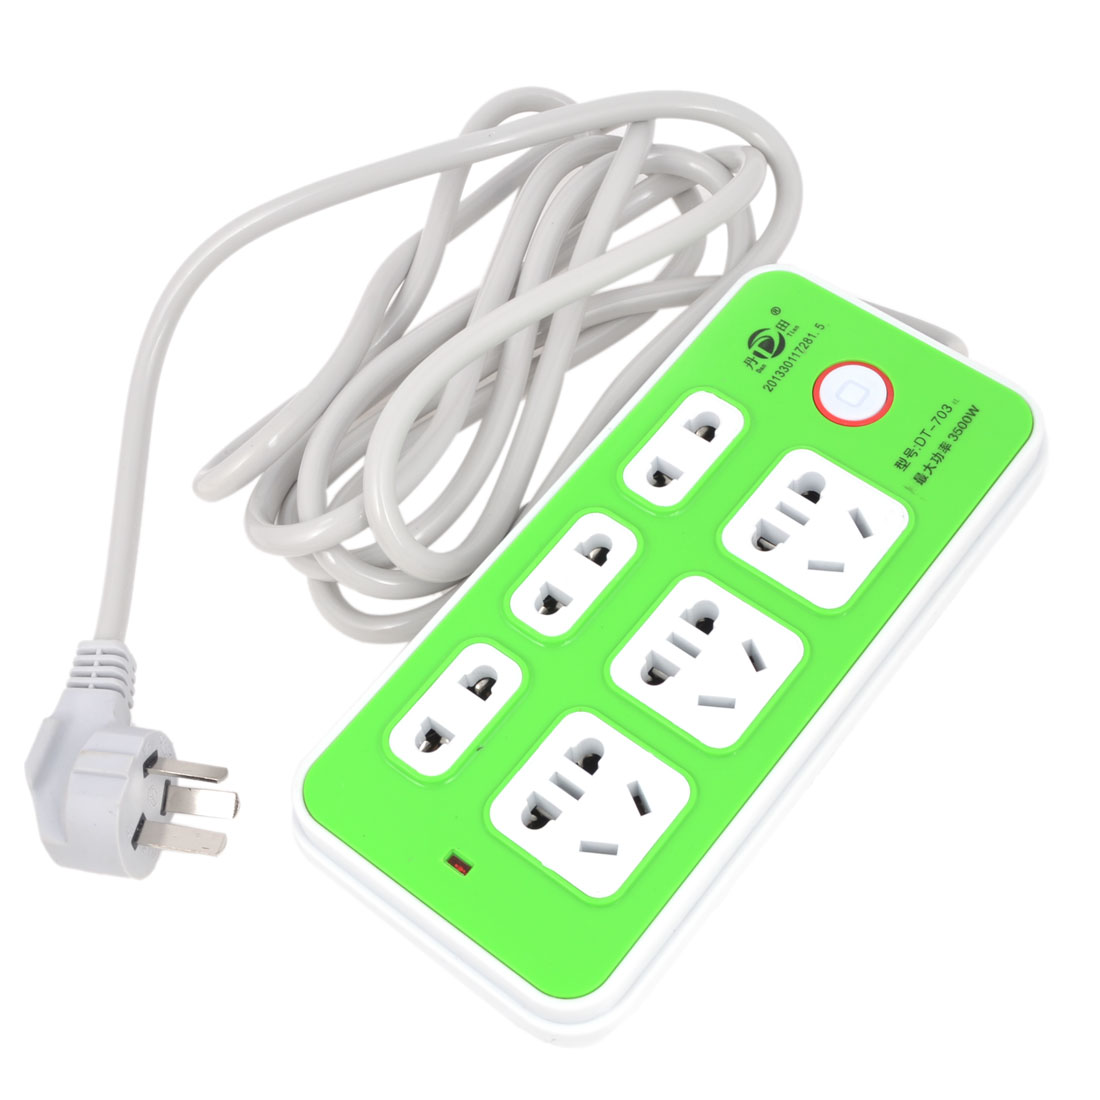 AU 3 Terminals Plug 3Way Multifunctional Extension Socket Green 10A/AC250V